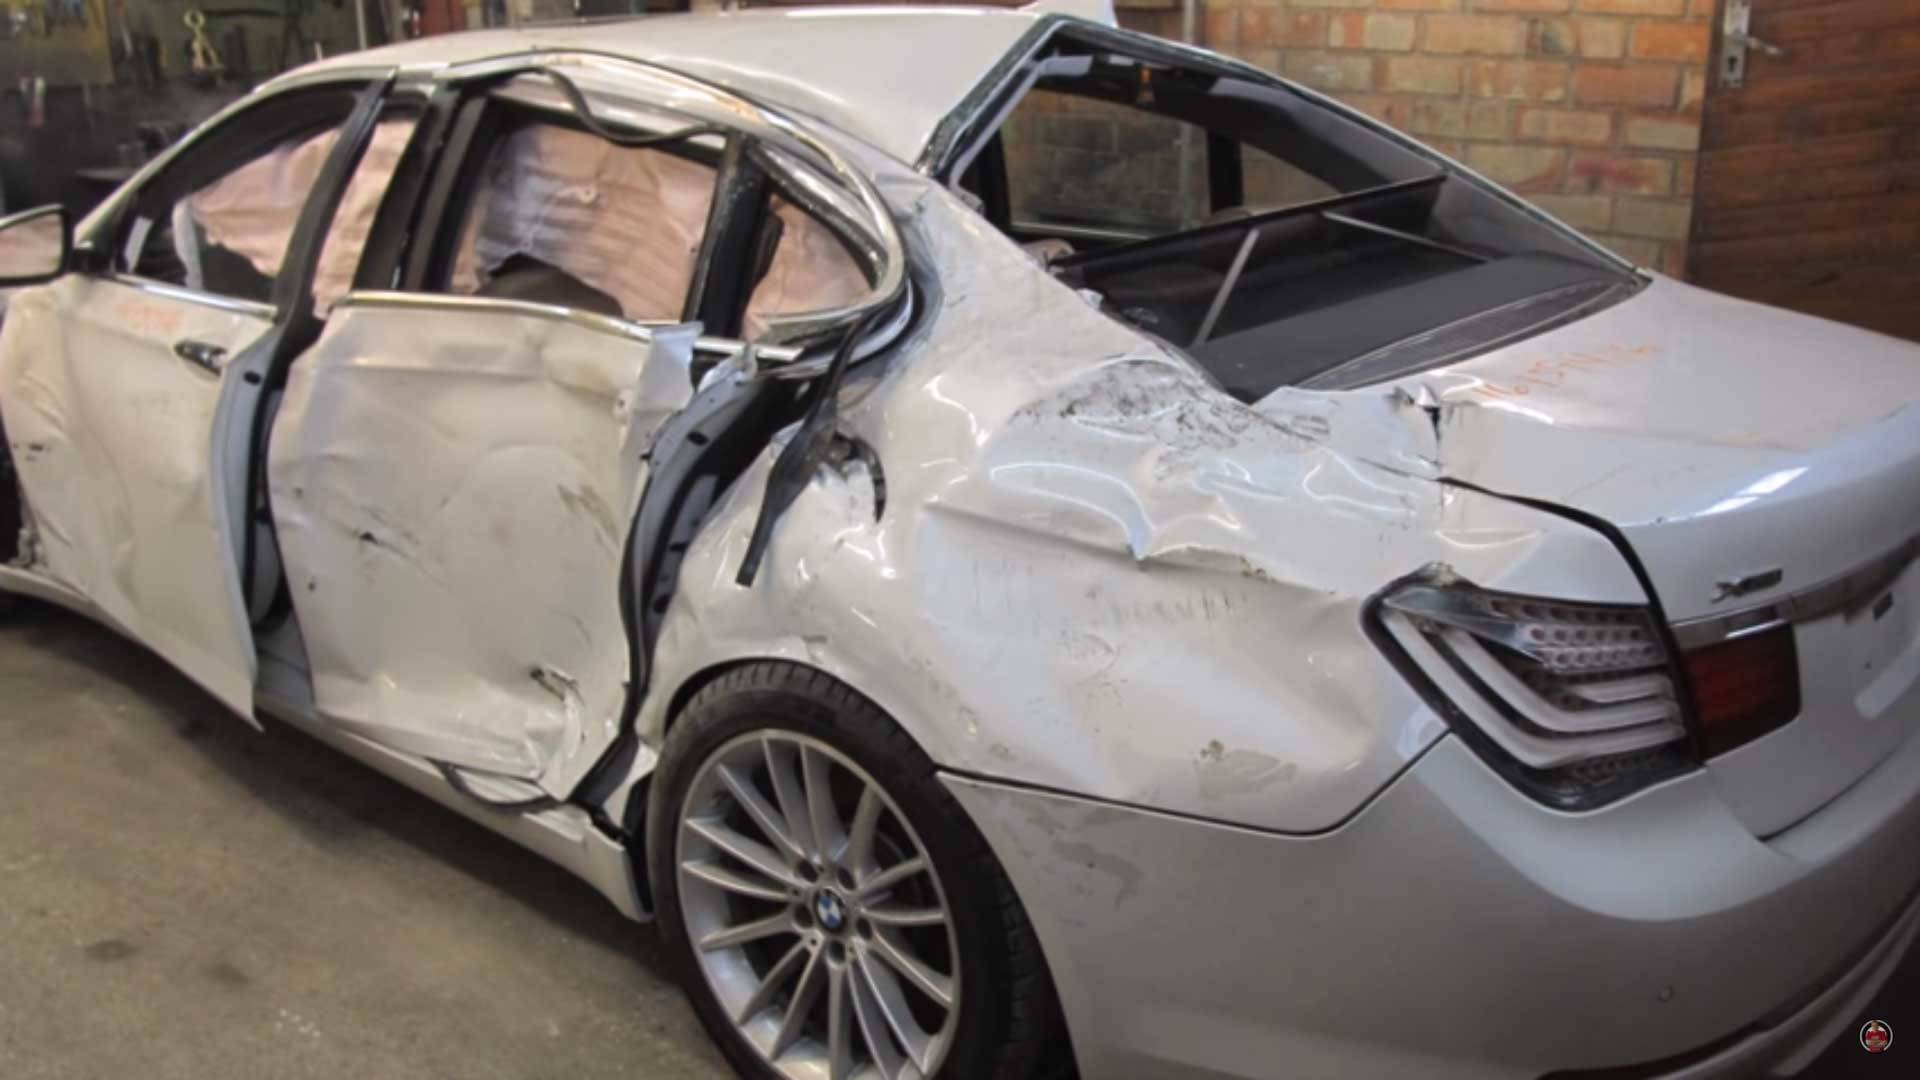 F01 BMW 7 Series Wreck Repaired by Russian Mechanic